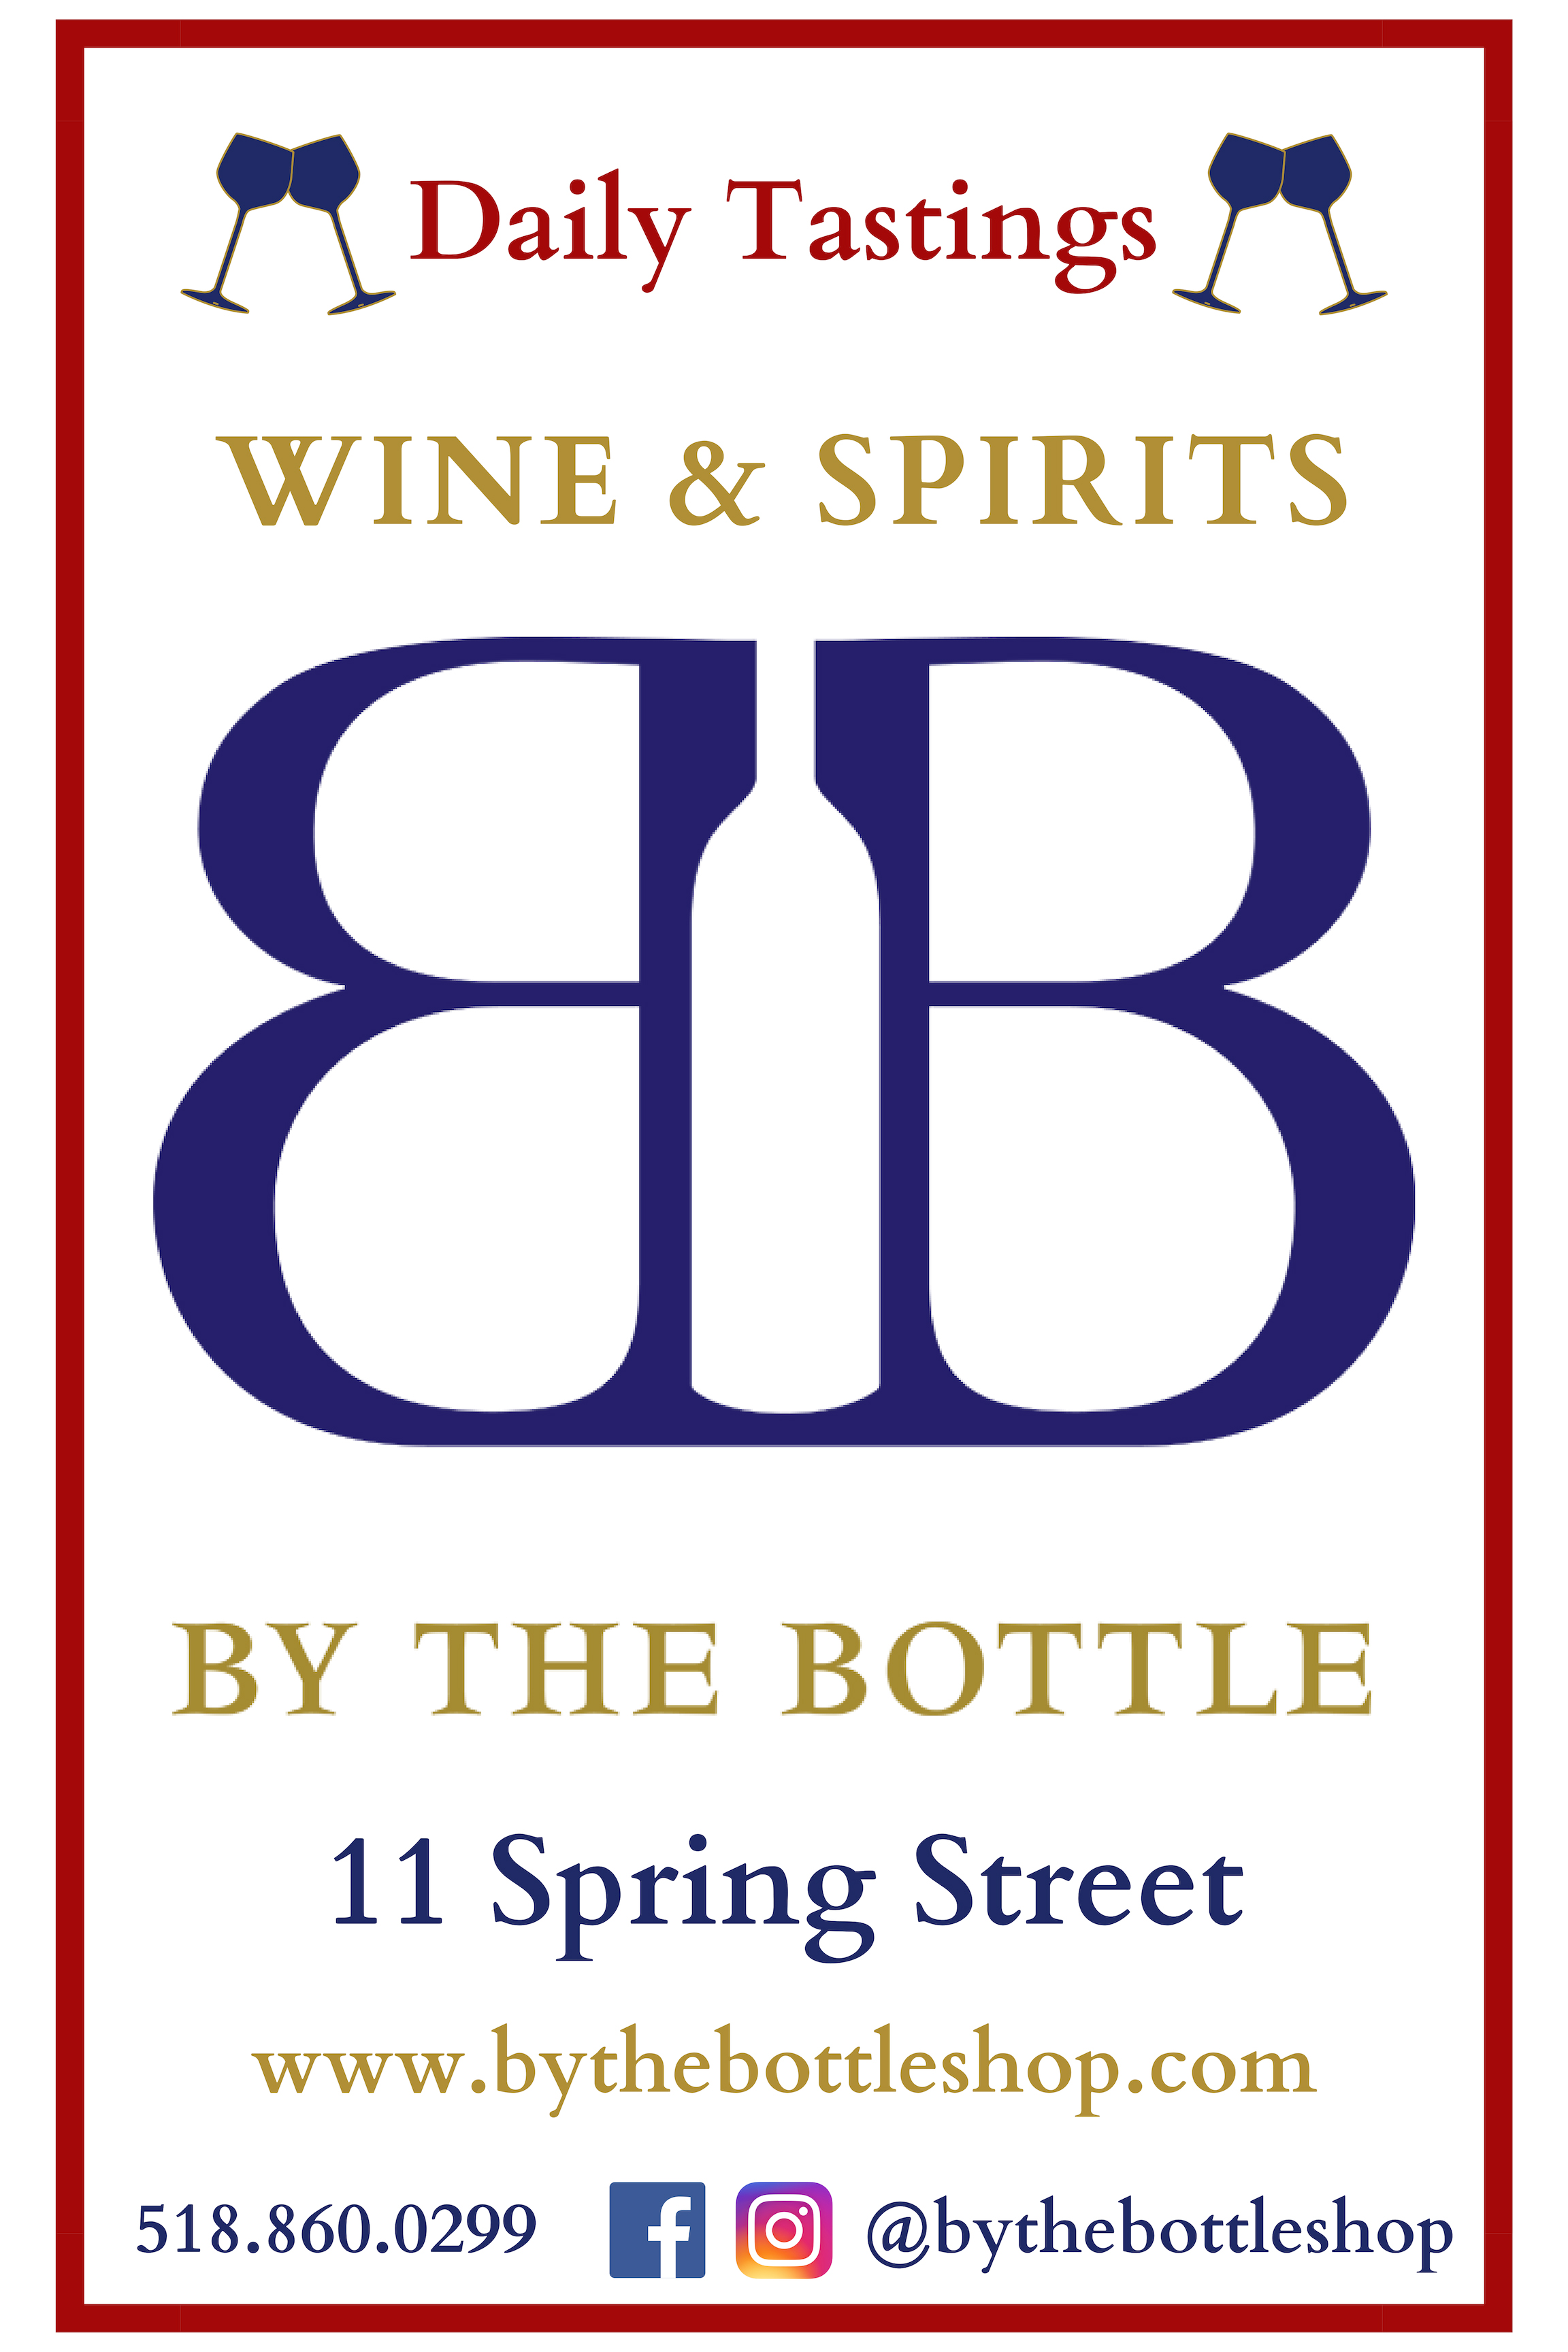 By The Bottle Wine & Spirits